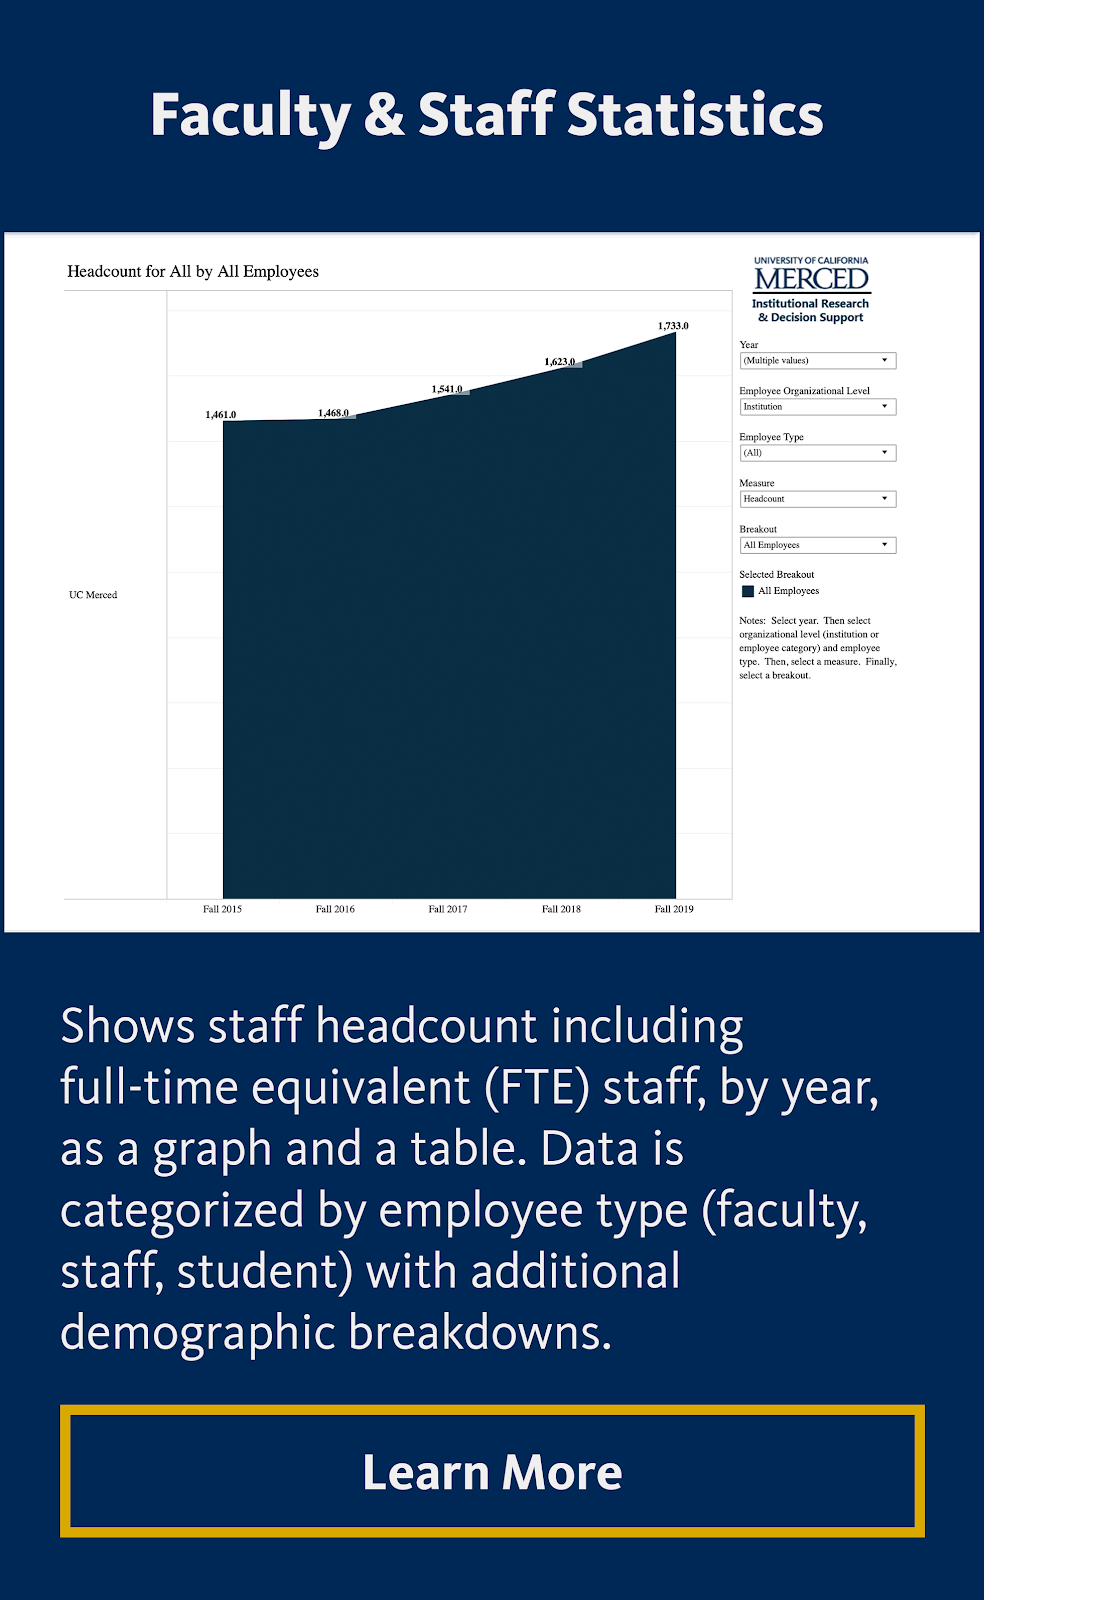 Faculty & Staff Statistics Interactive Data